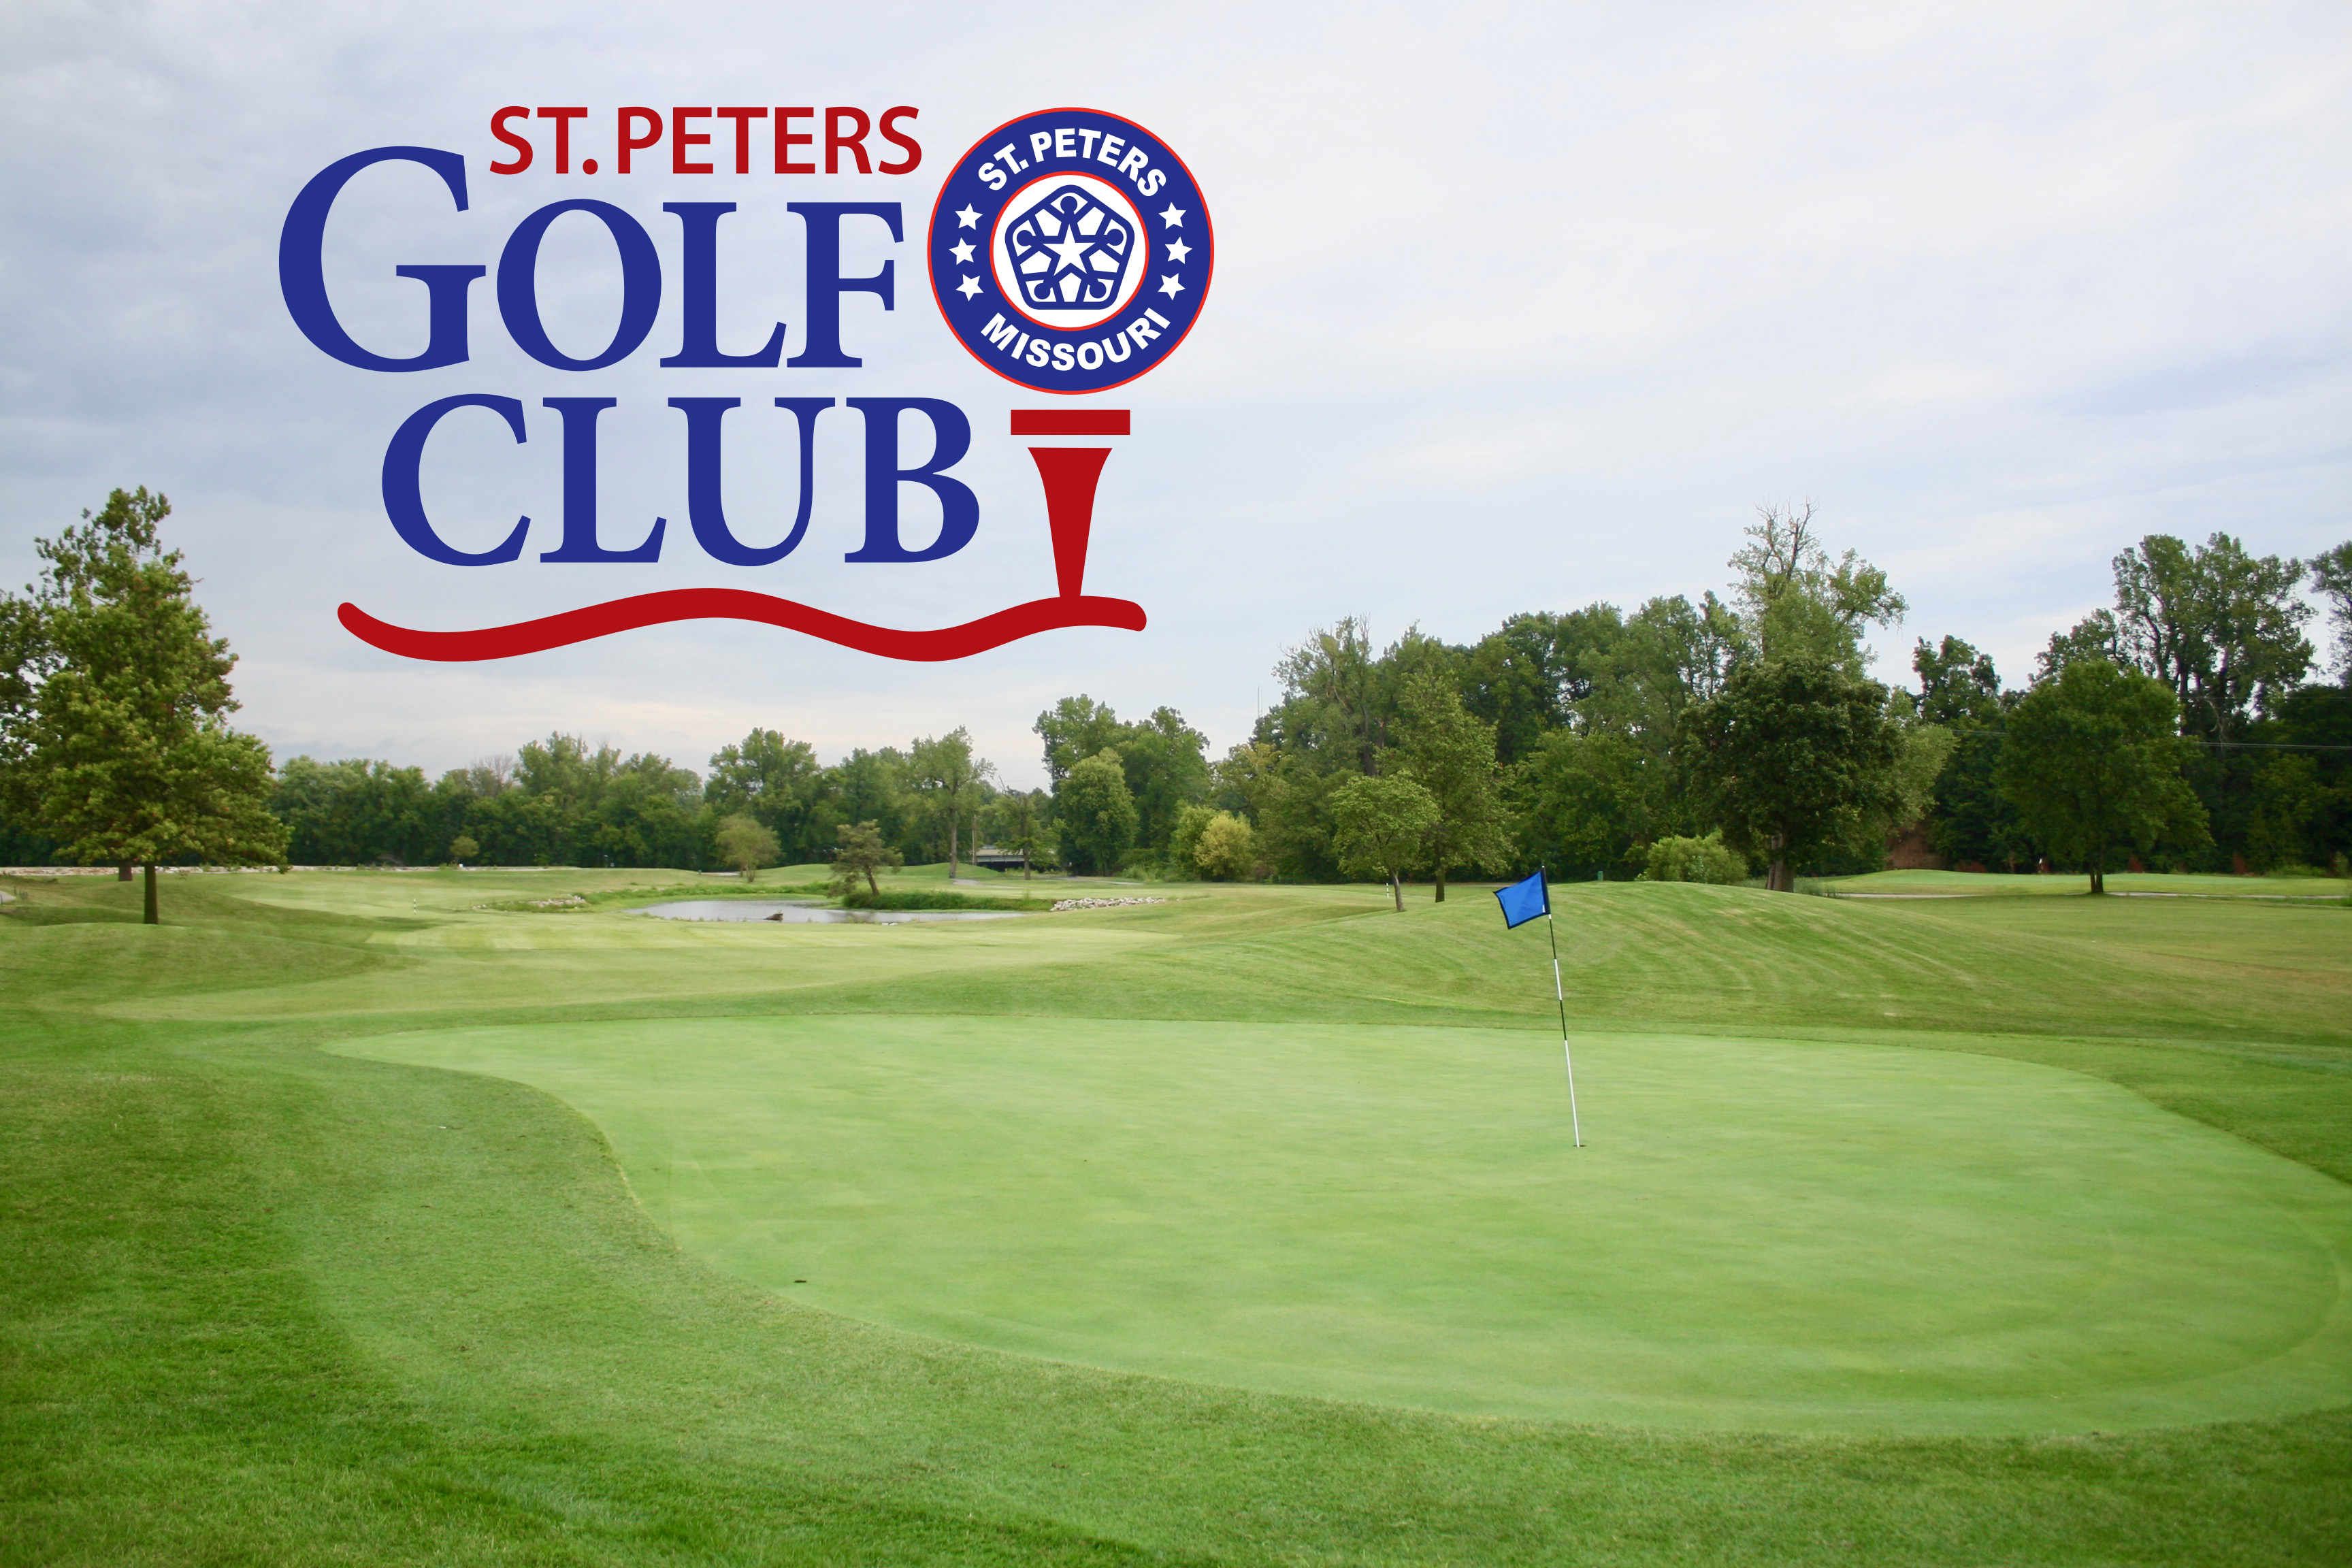 60th Annual Greater St. Charles County Chamber of Commerce Golf Tournament